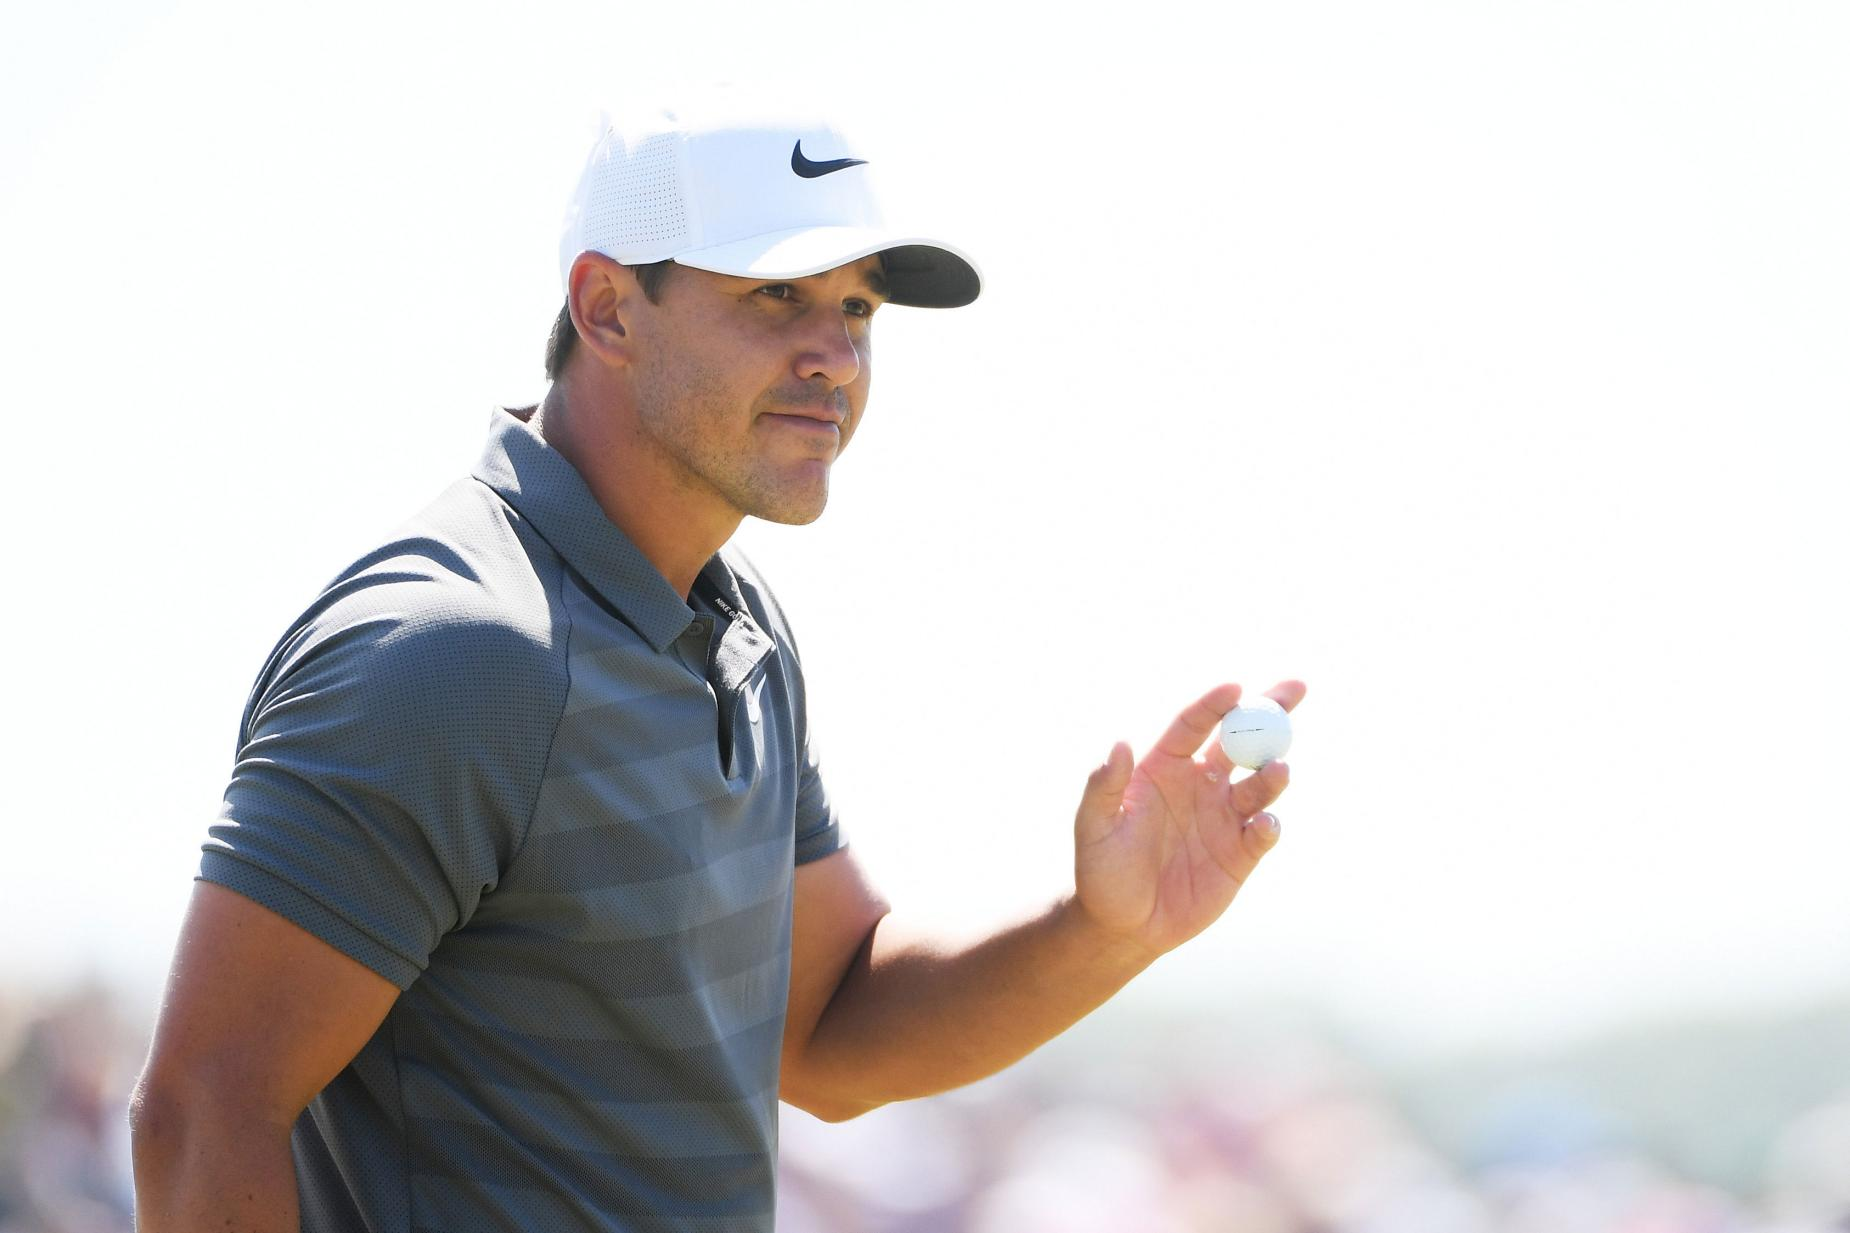 brooks-koepka-us-open-2018-sunday-waving.jpg